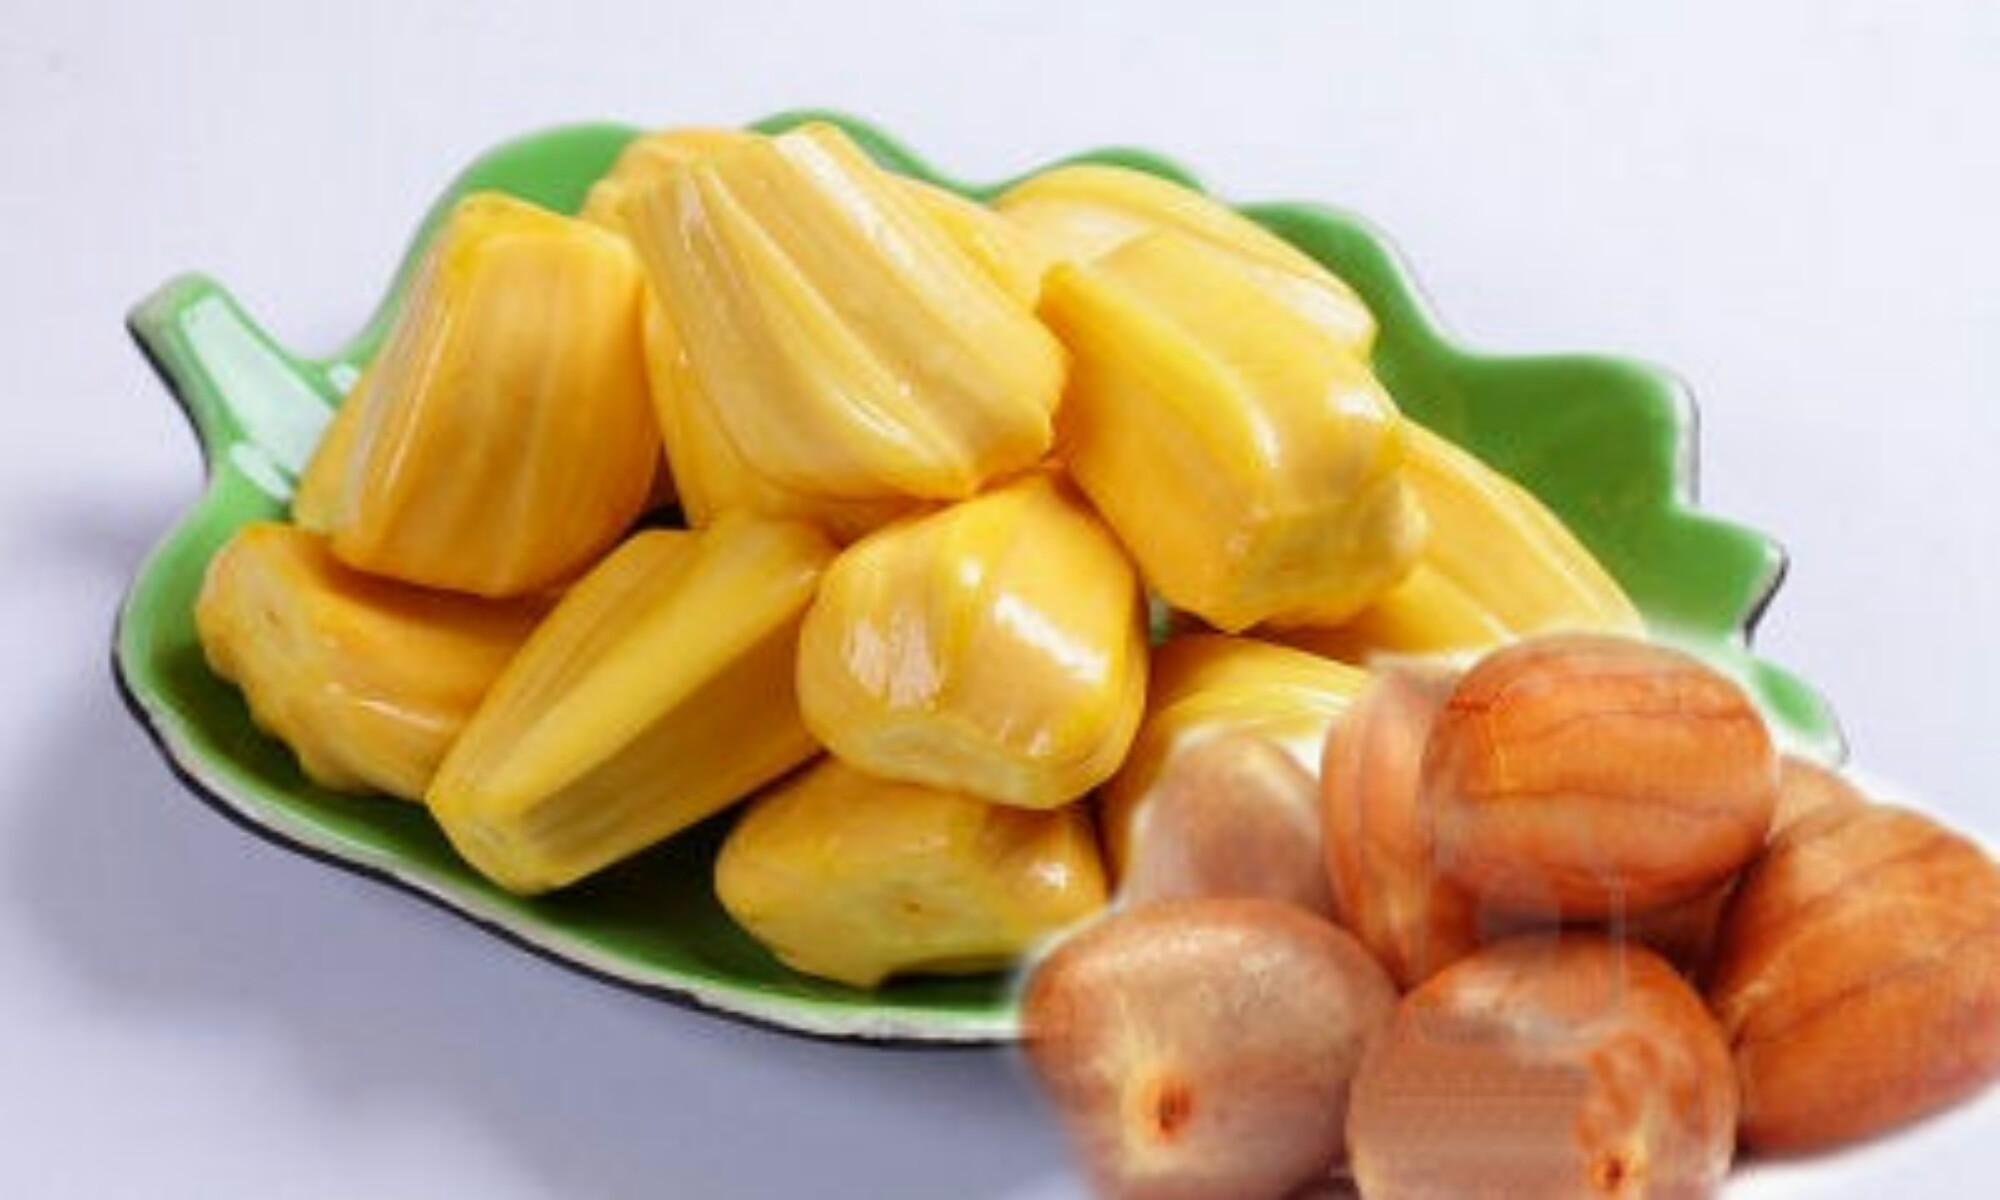 pandesal jackfruit seed flour as substitute The most popular way to serve jackfruit as a meat substitute staackmann says the seeds of the mature jackfruit can be boiled and you can use those for flour.